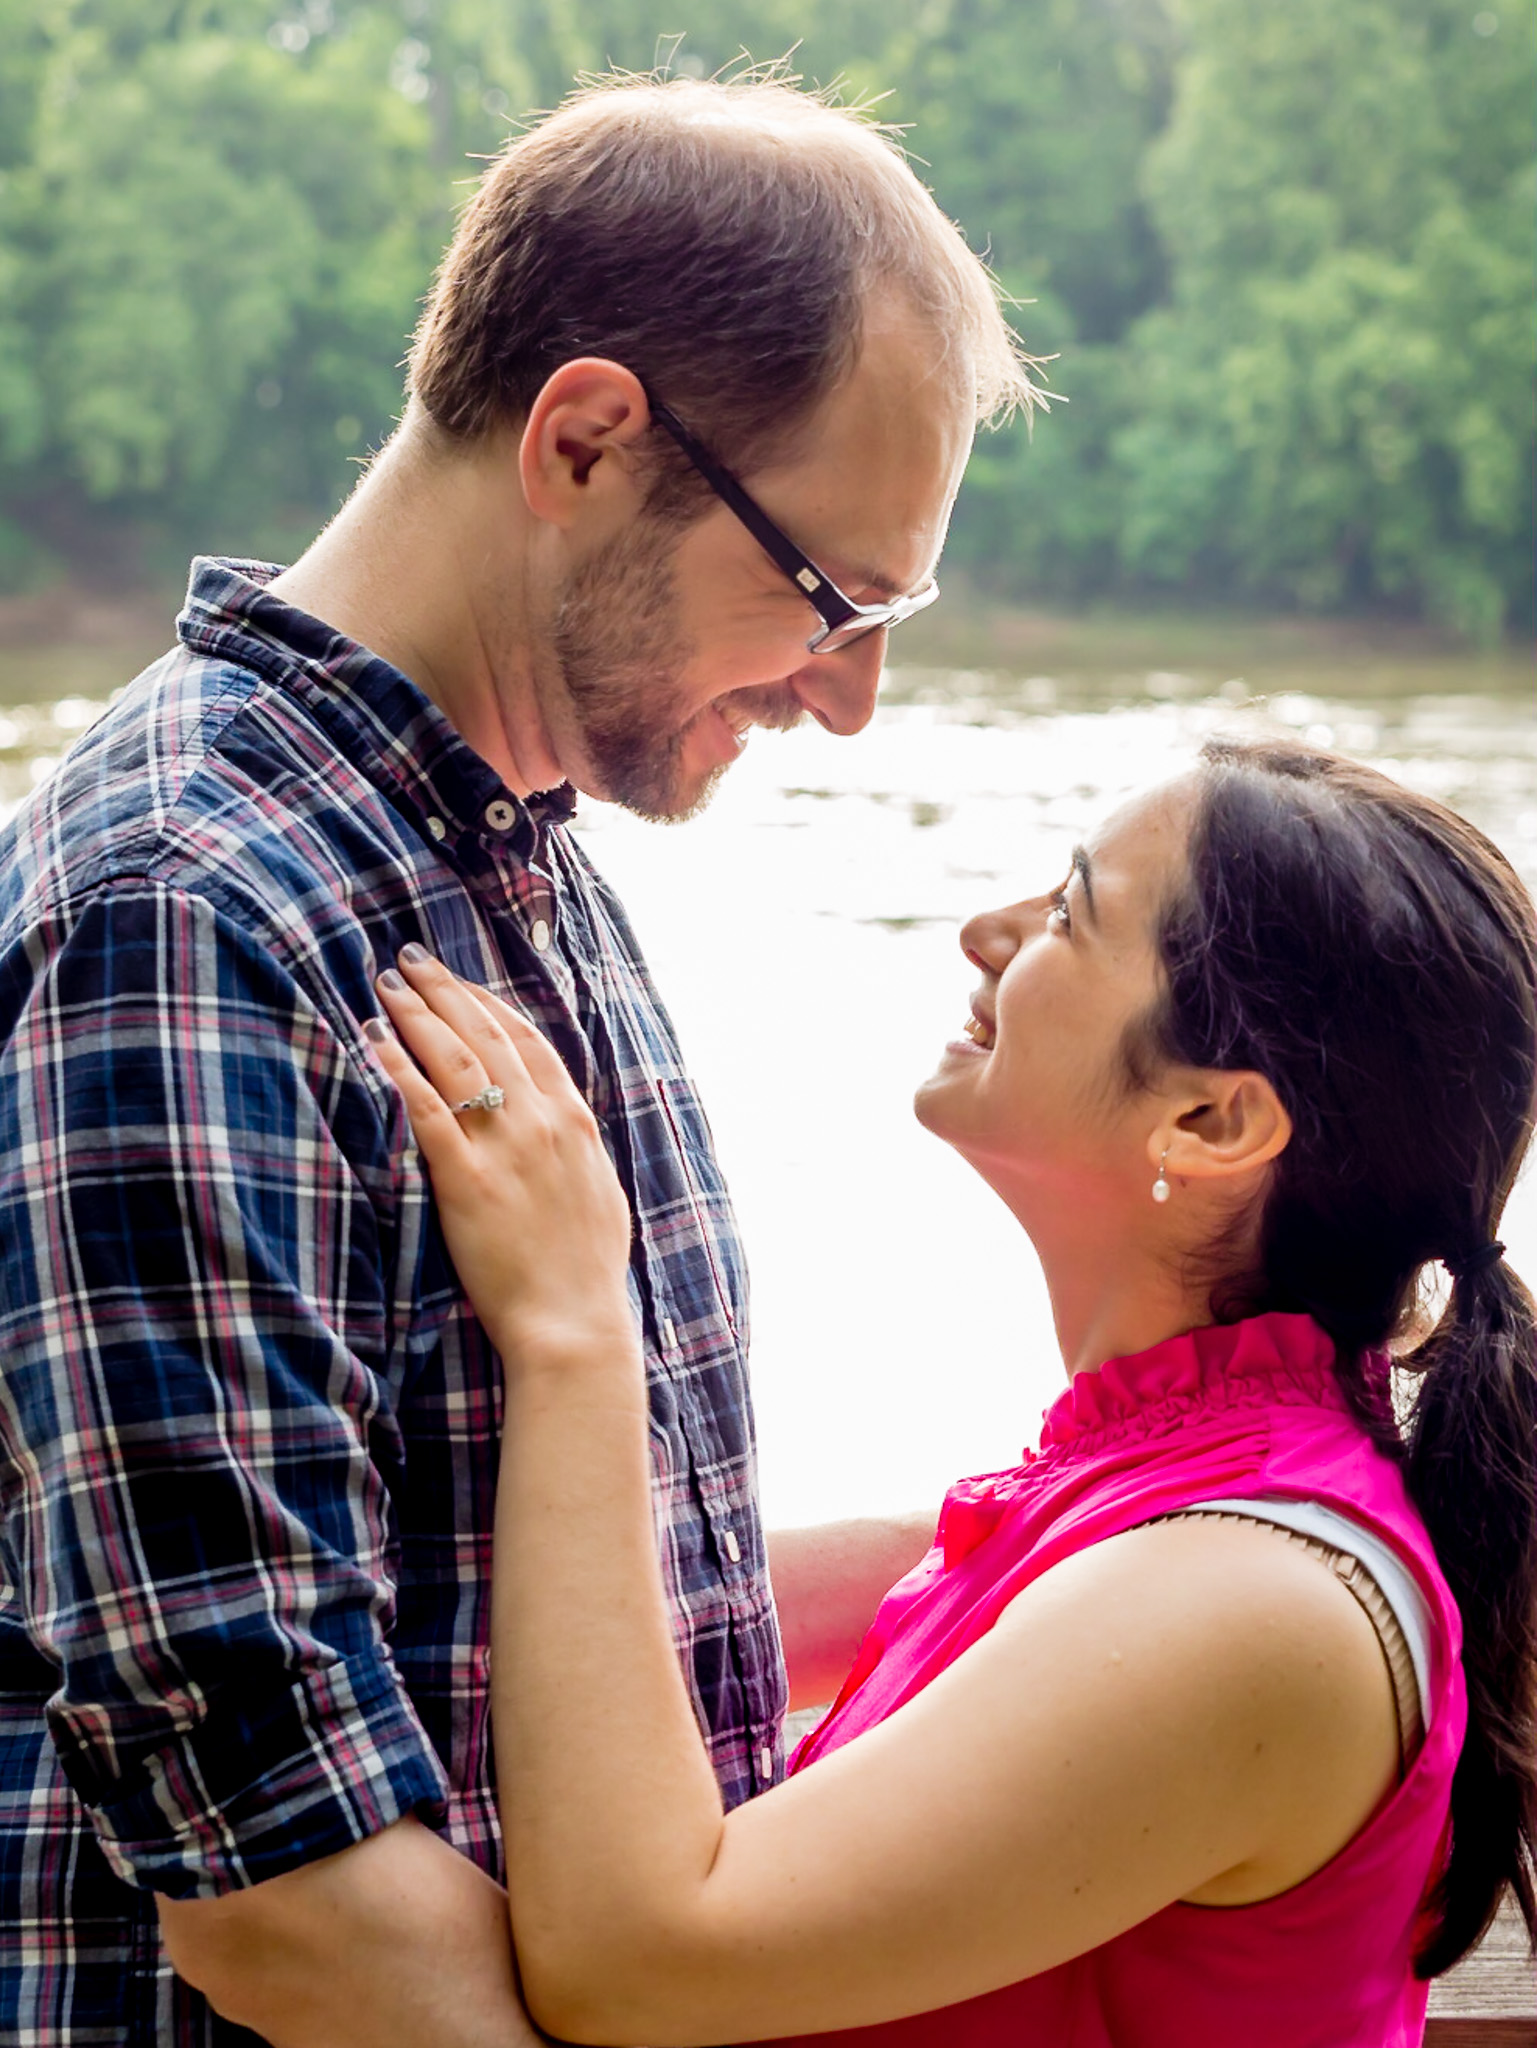 Engagement, Photography, Photographer, Columbia SC, Riverwalk, USC, College Campus, Couple, Engagement Ring, Ring